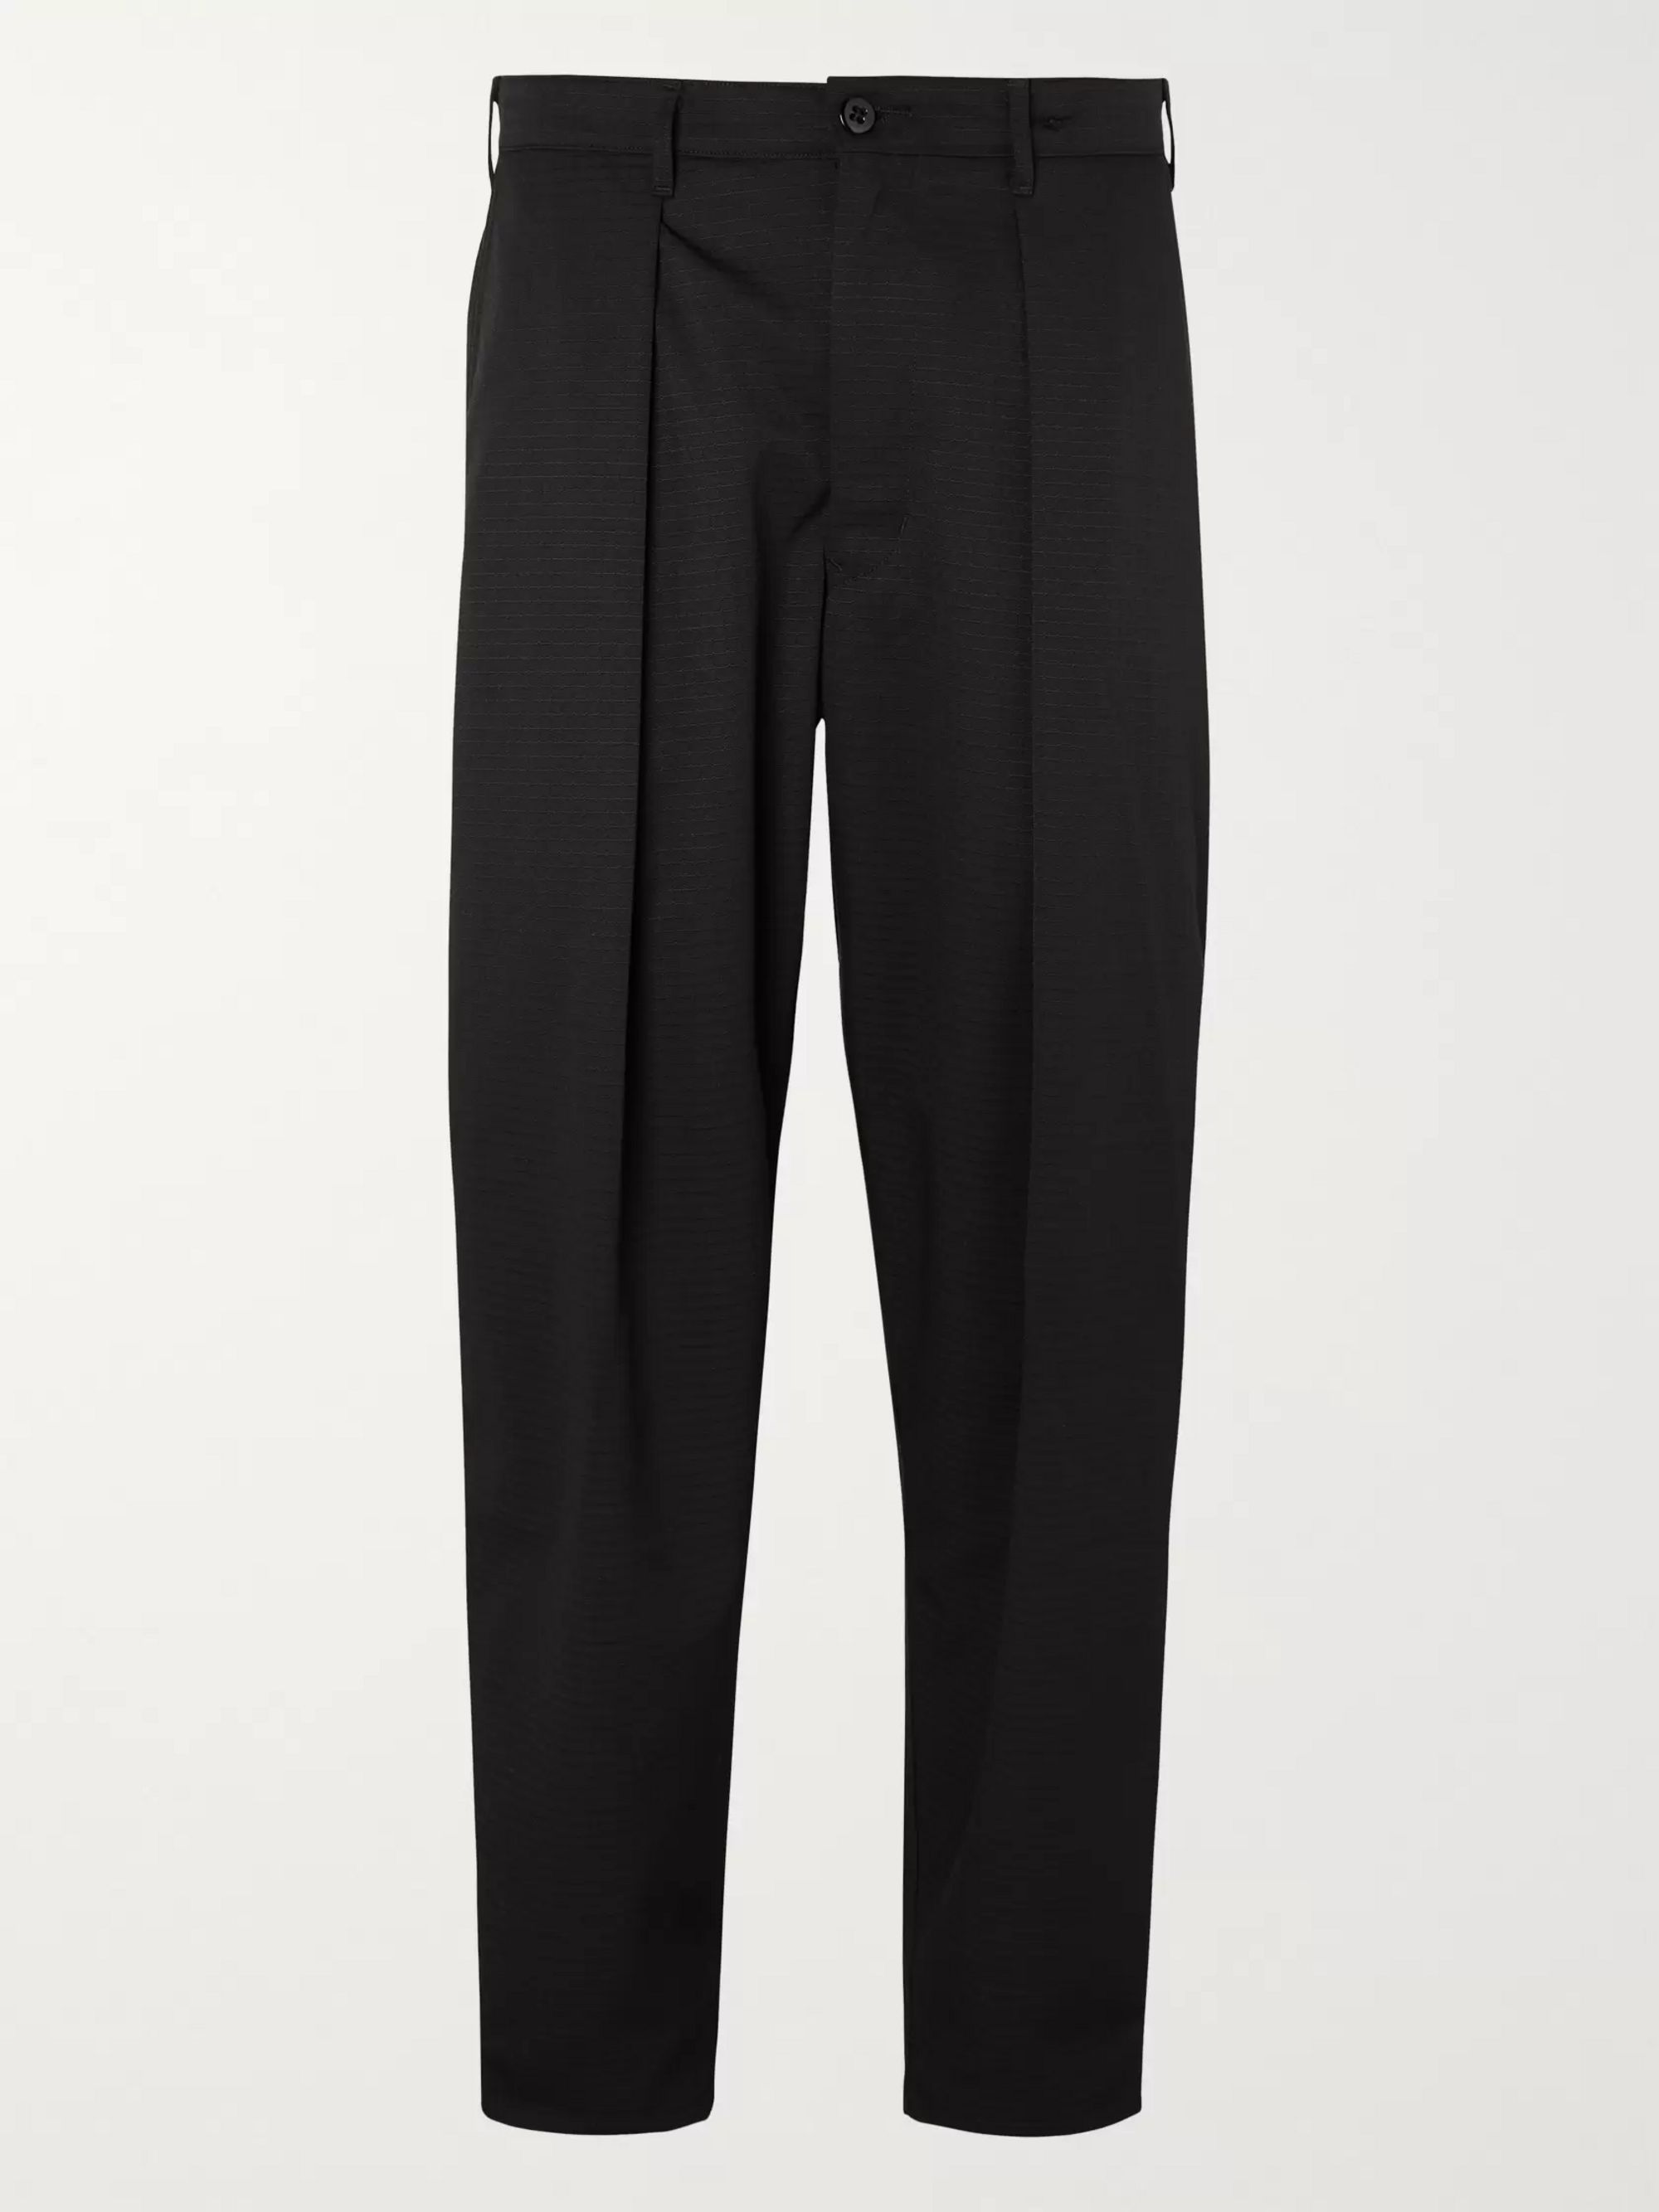 Monitaly Tapered Cropped Pleated Vancloth Cotton Oxford Trousers